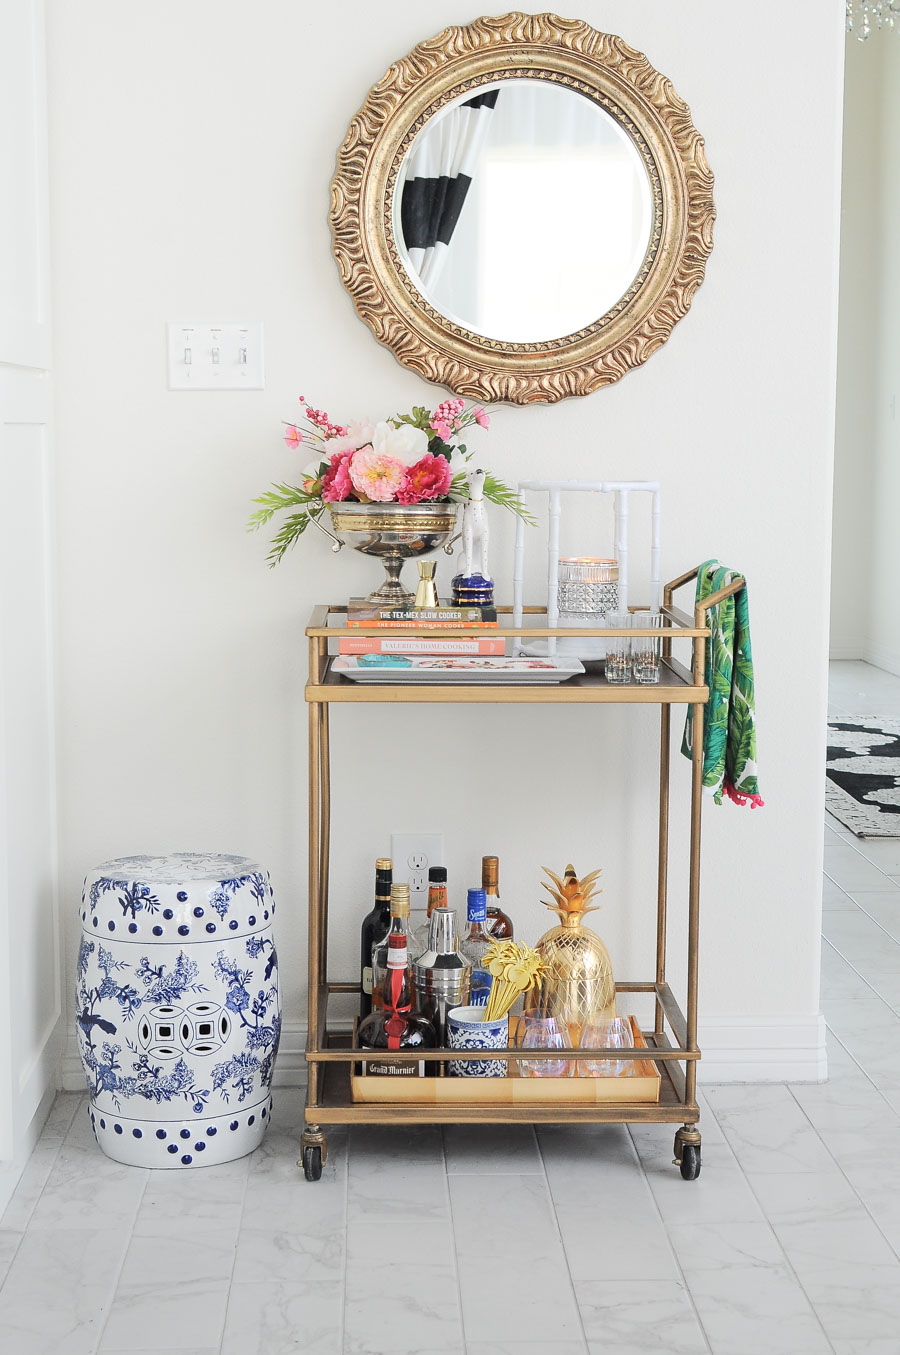 Chic glam floral spring bar cart decor ideas monica - How to decorate a bar ...